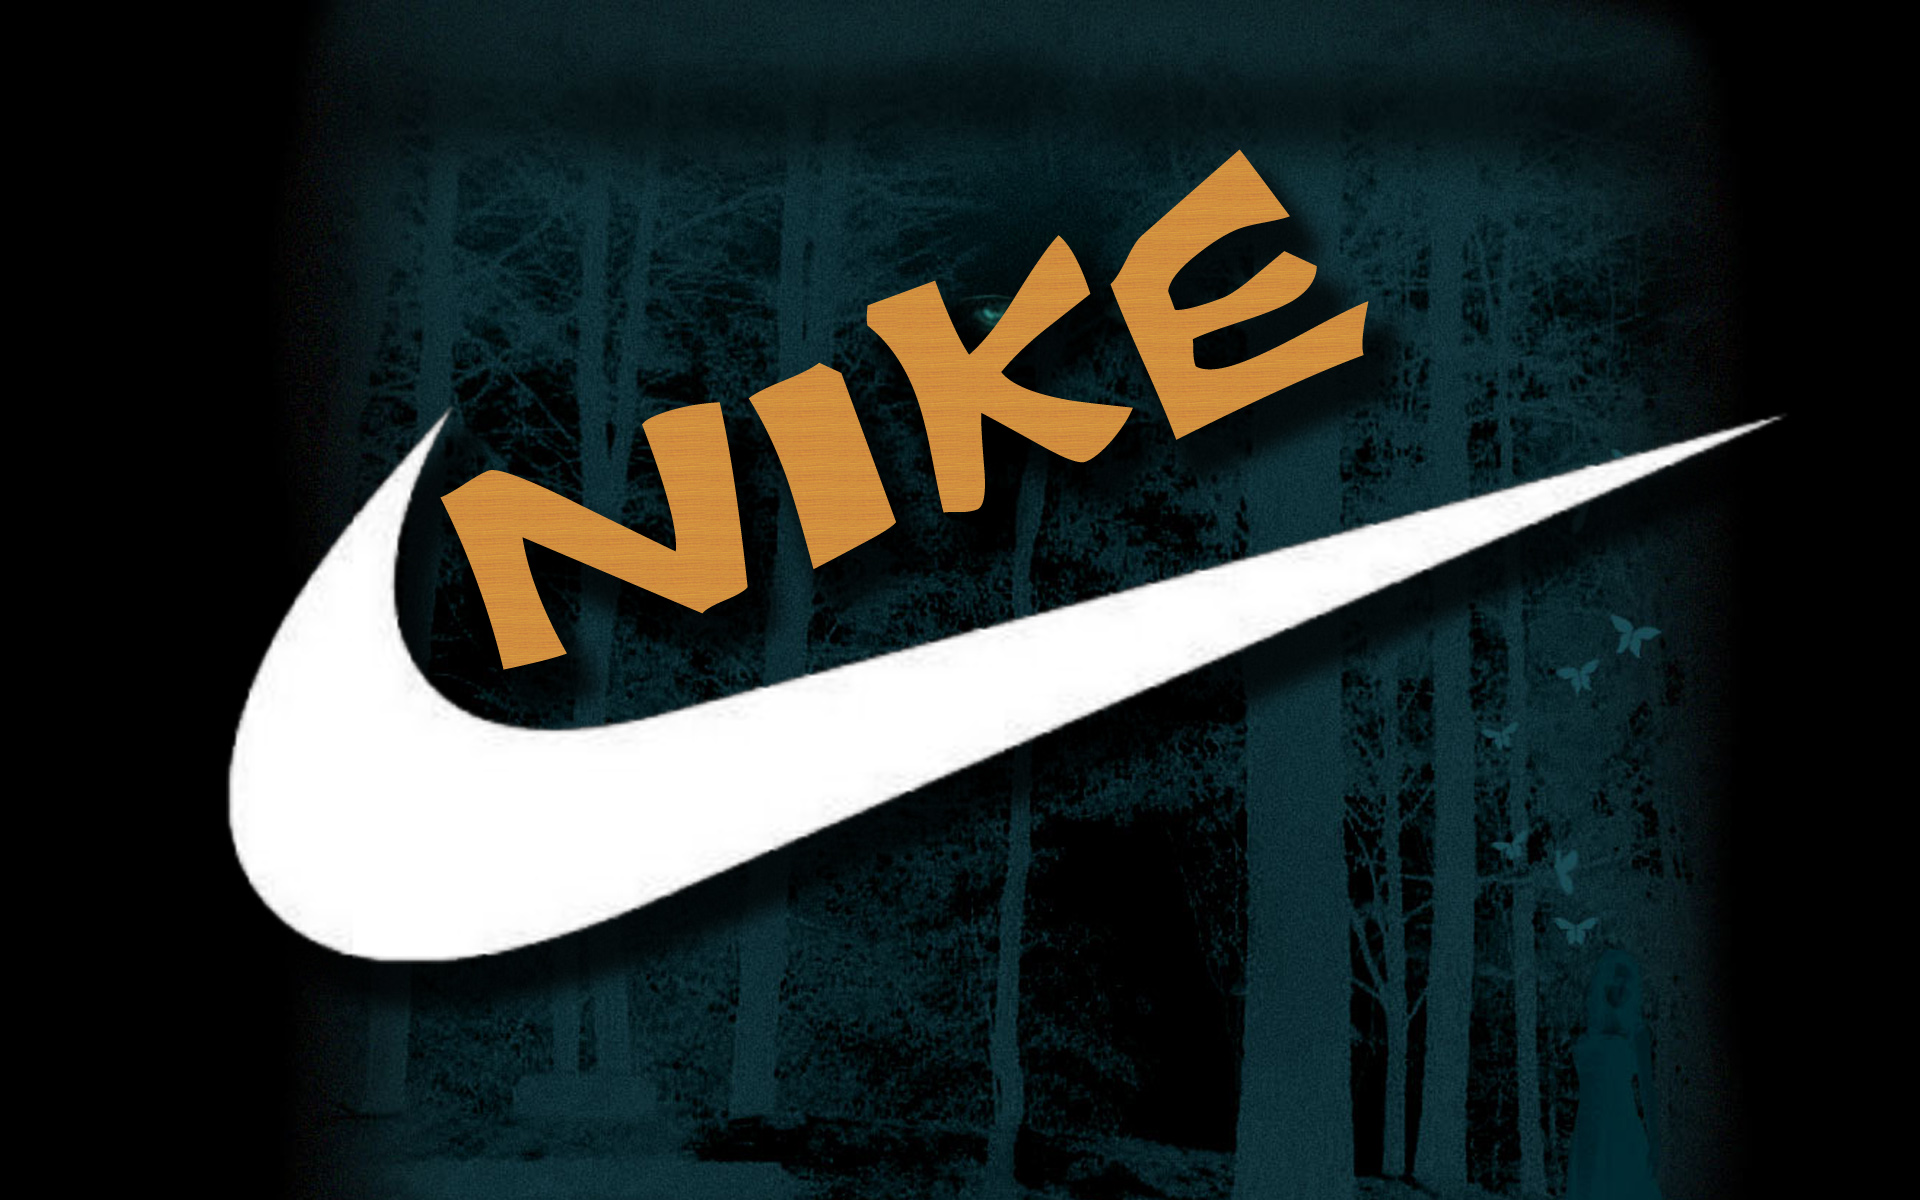 nike logo pictures Desktop Backgrounds for HD Wallpaper wall 1920x1200